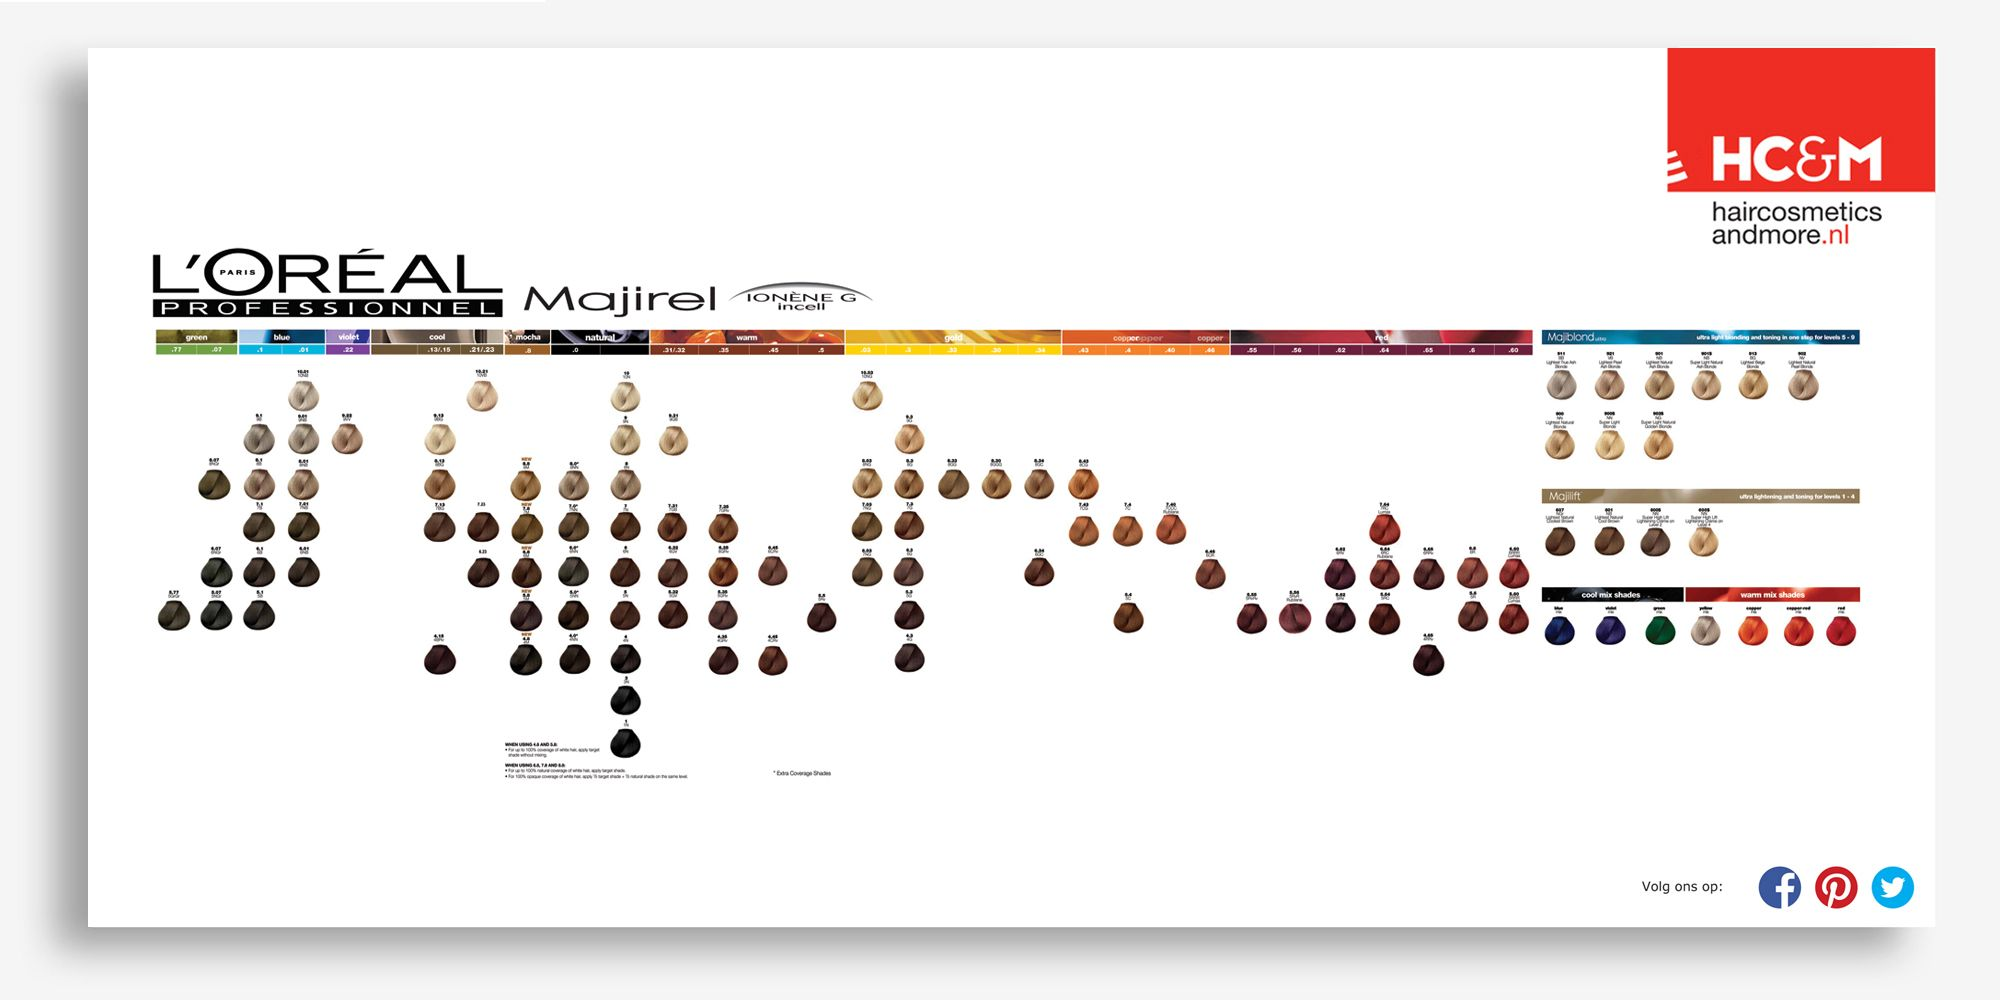 Hcm majirel color chart preview all about the salon life hcm majirel color chart preview nvjuhfo Choice Image